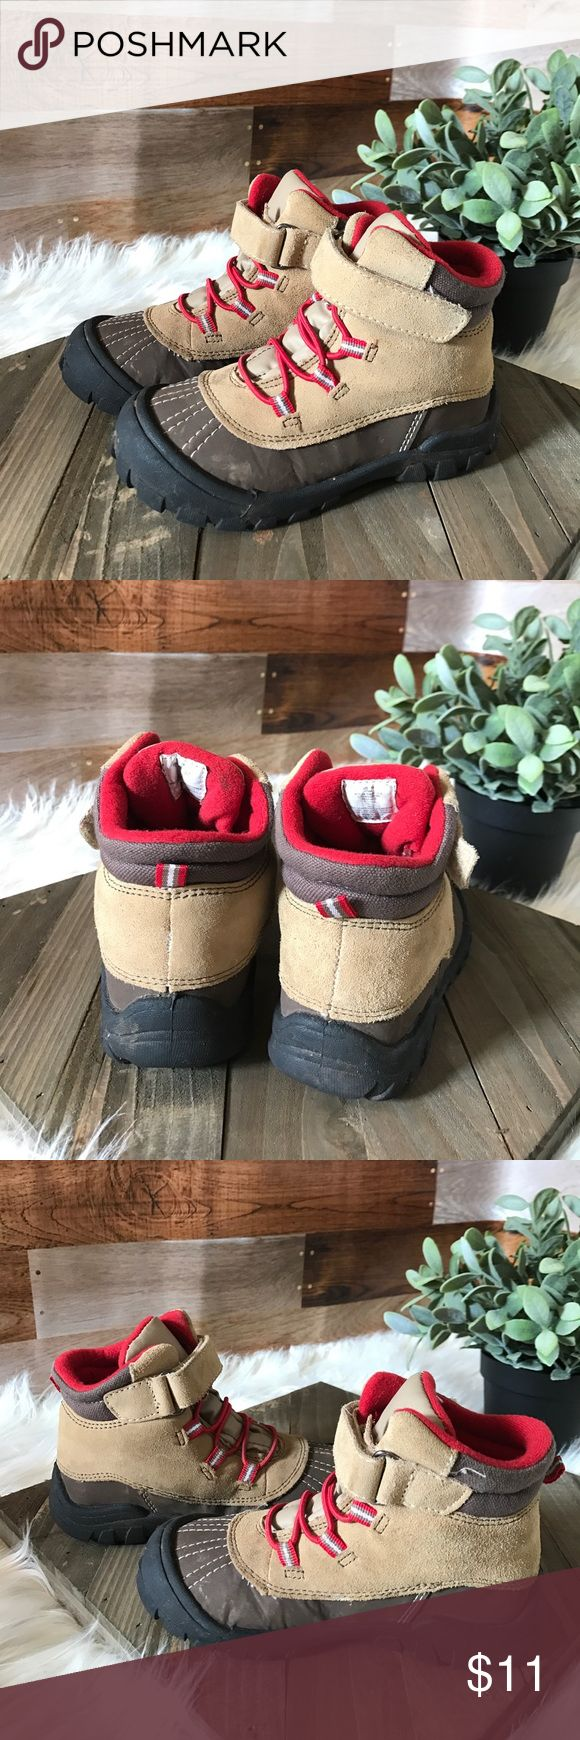 """Old navy boys hiking snow boots Old navy boys hiking boots with Velcro trap and elastic """"laces"""" used condition. Old Navy Shoes Rain & Snow Boots"""